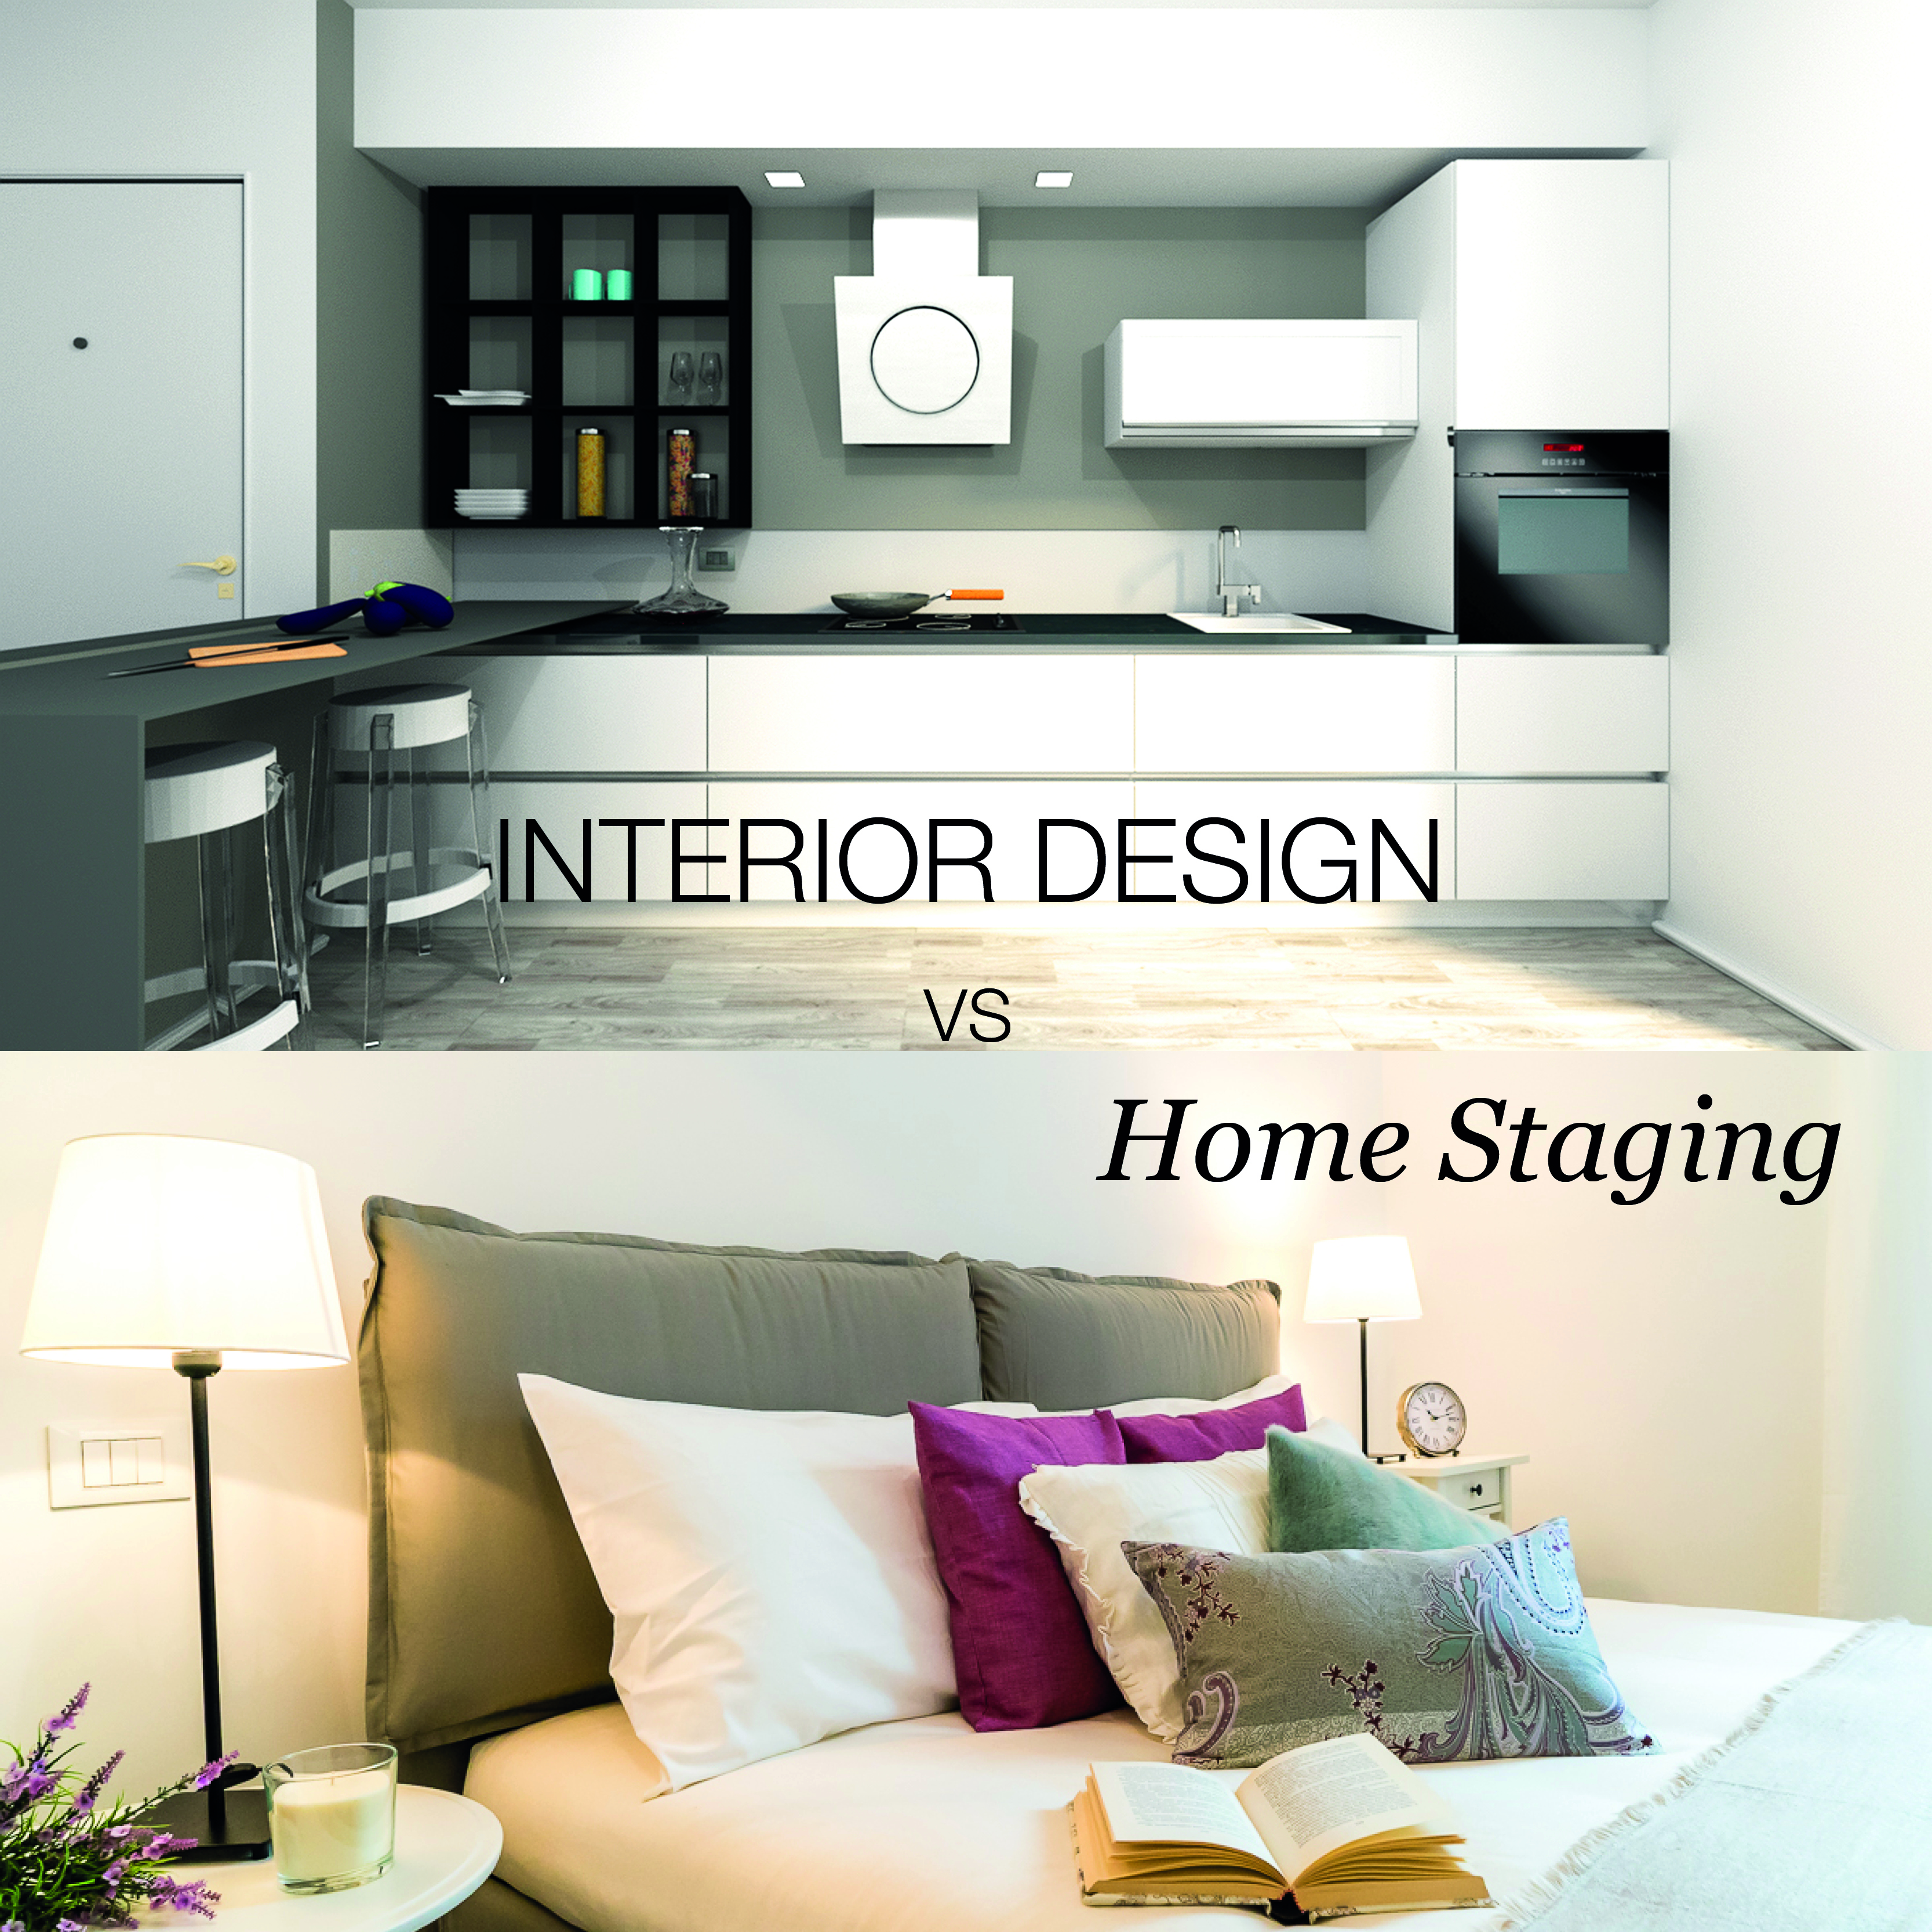 Interior Design Home Staging: Interior Design E Home Staging, Chiariamo Cosa Sono